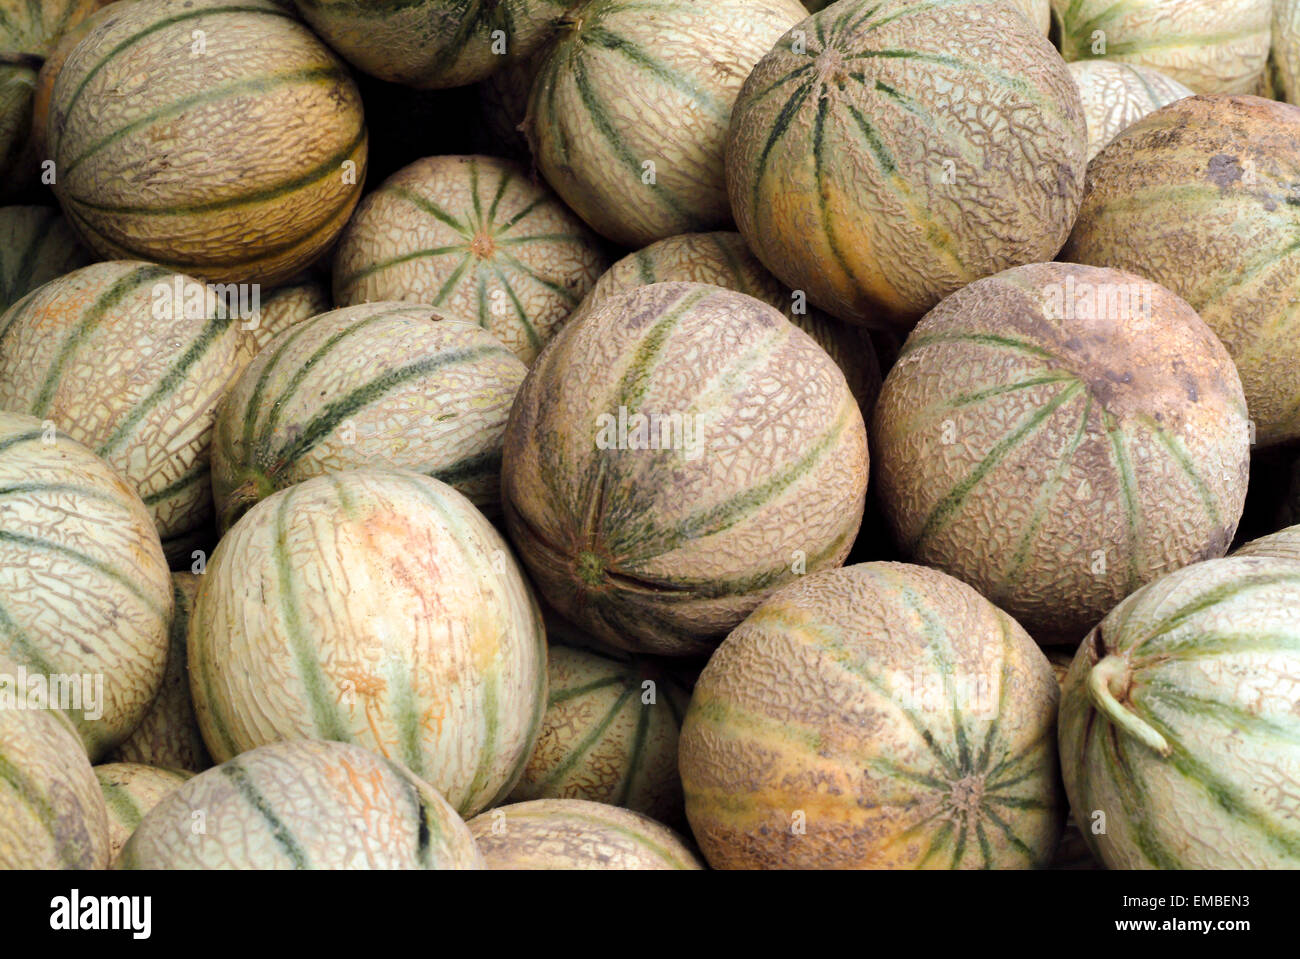 Ou melon cantaloup ou melon filet sur un stand de marché en Provence France Photo Stock